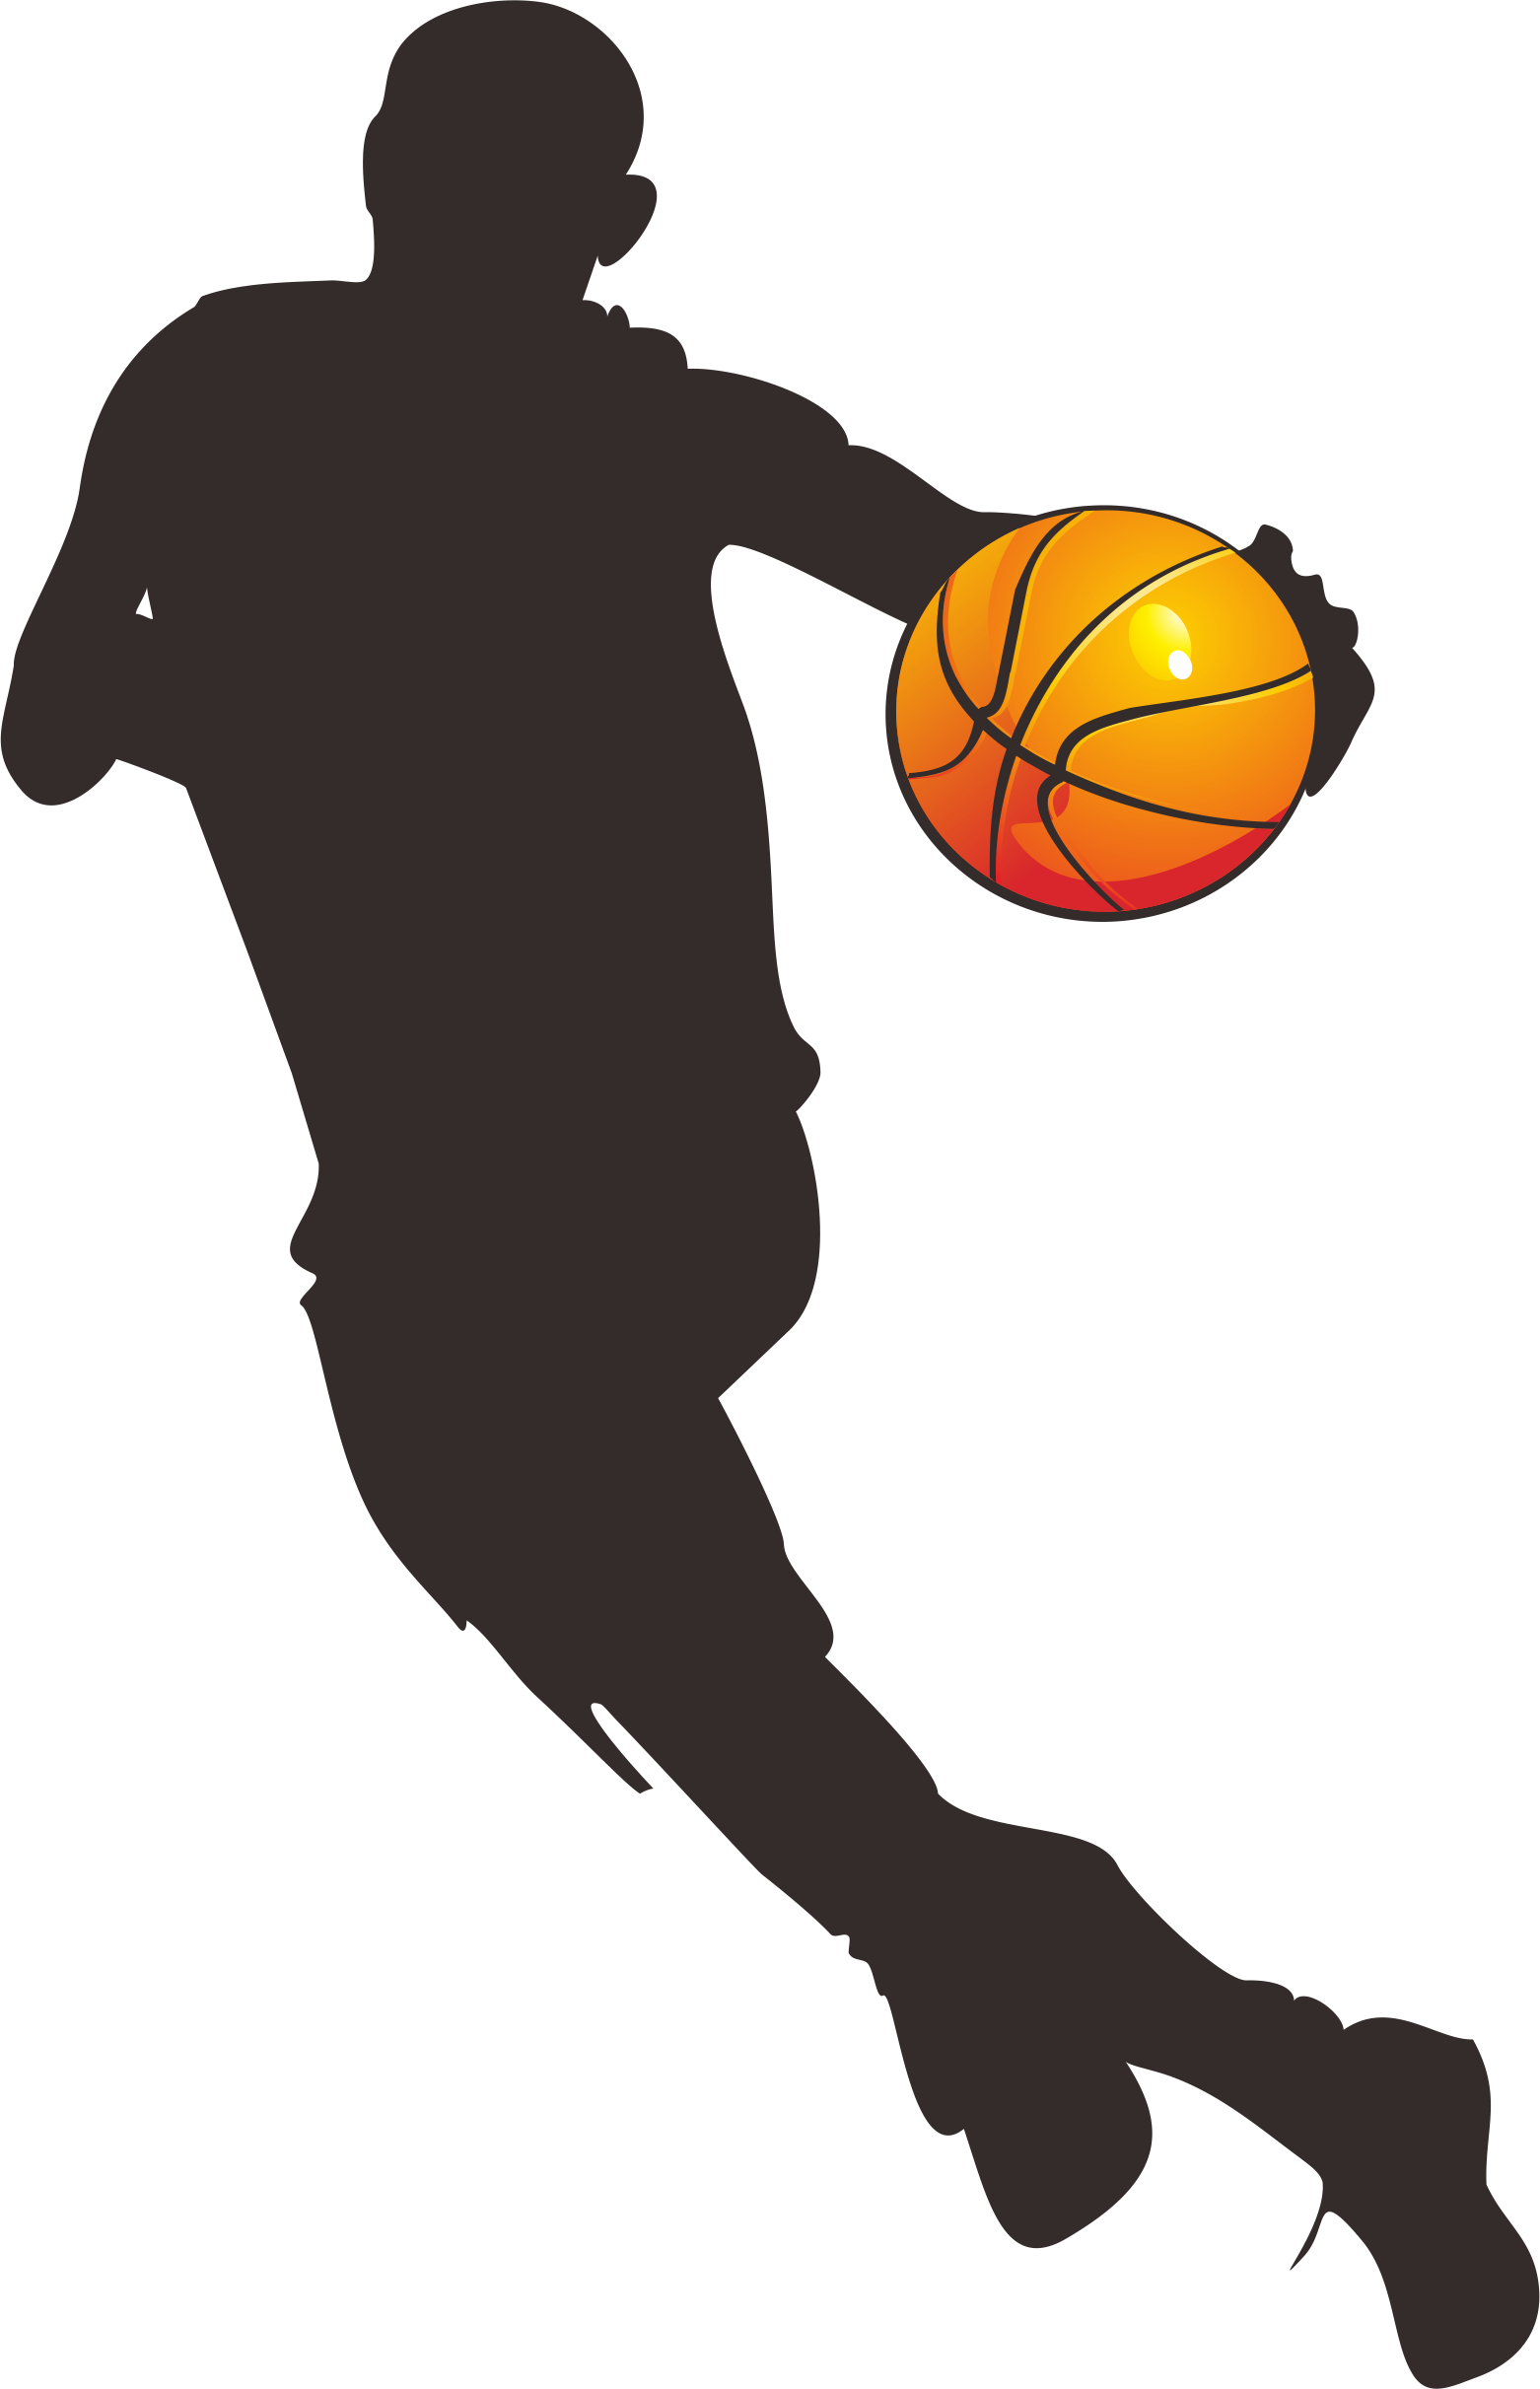 Basketball ball over court clipart banner free stock Basketball Backboard Clip art - basketball 1562*2423 transprent Png ... banner free stock